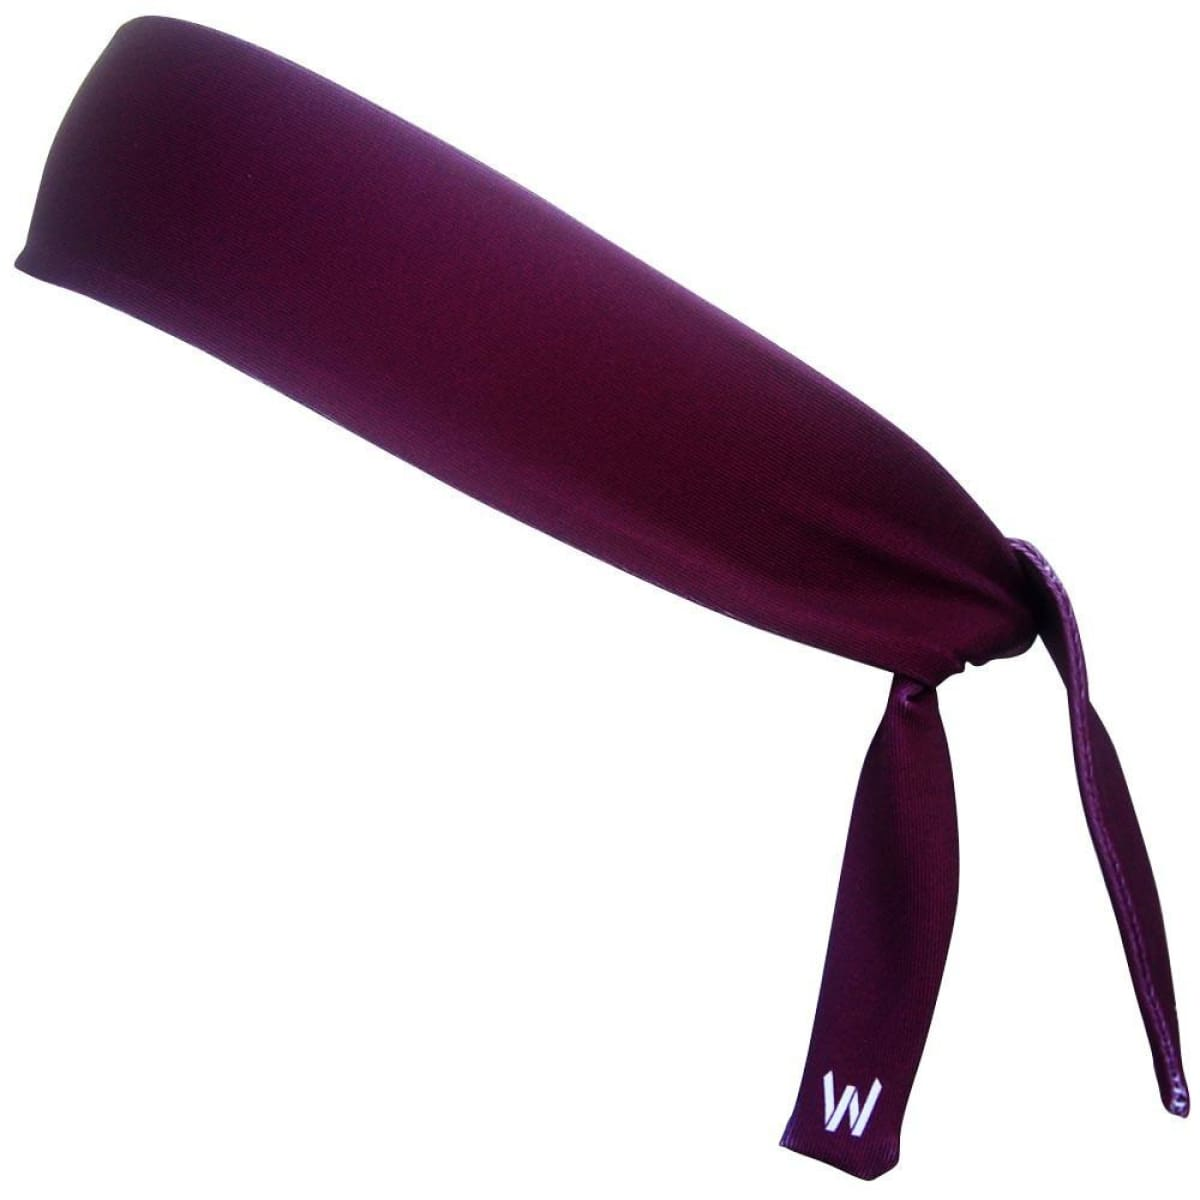 Maroon Elastic Tie 2.25 Inch Headband - Wicked Headbands